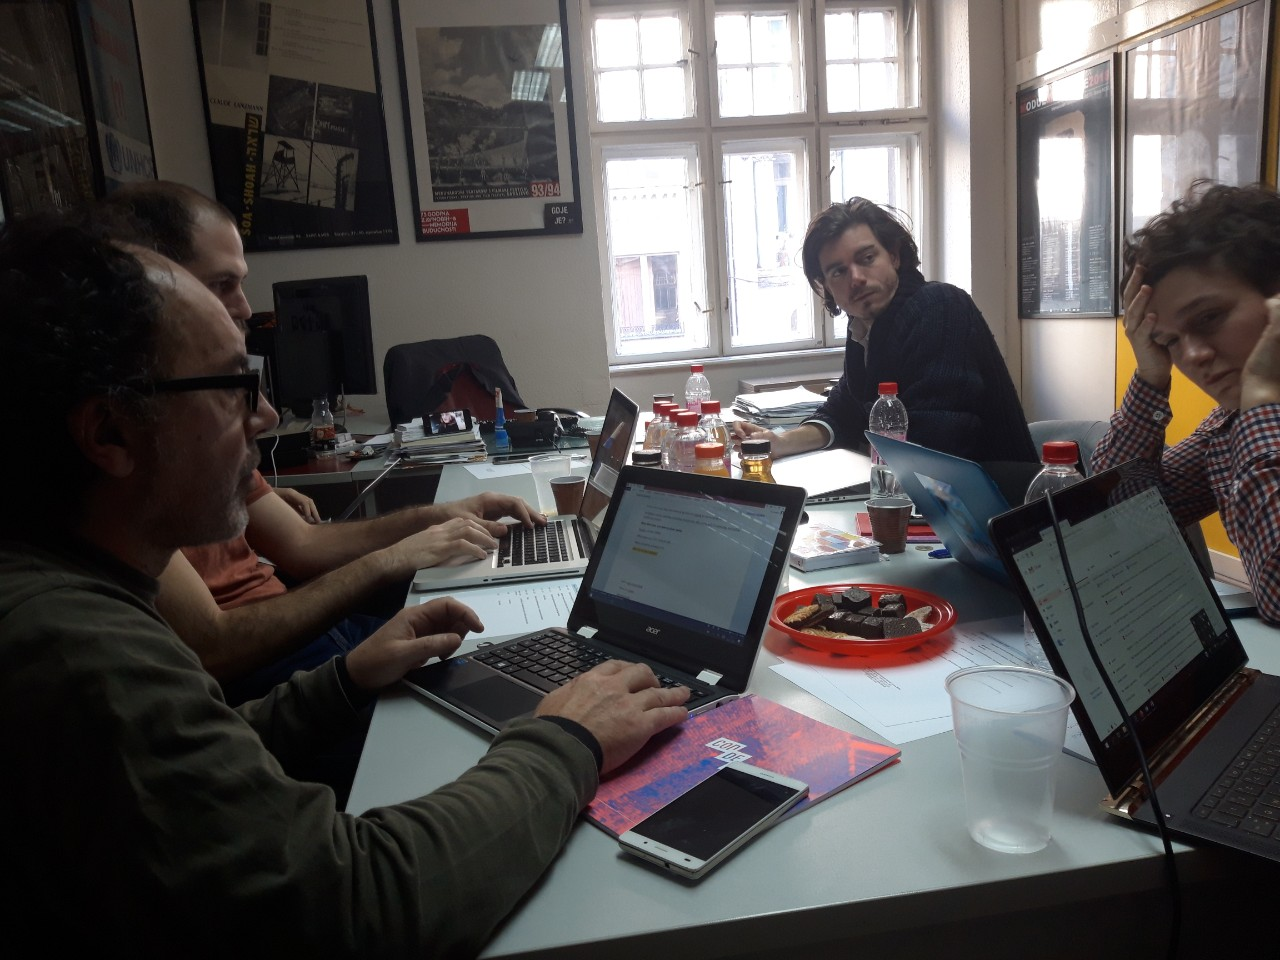 Joseba Lazkano, ACT Festival director, in the Shift Key meeting in Sarajevo the 28th of November